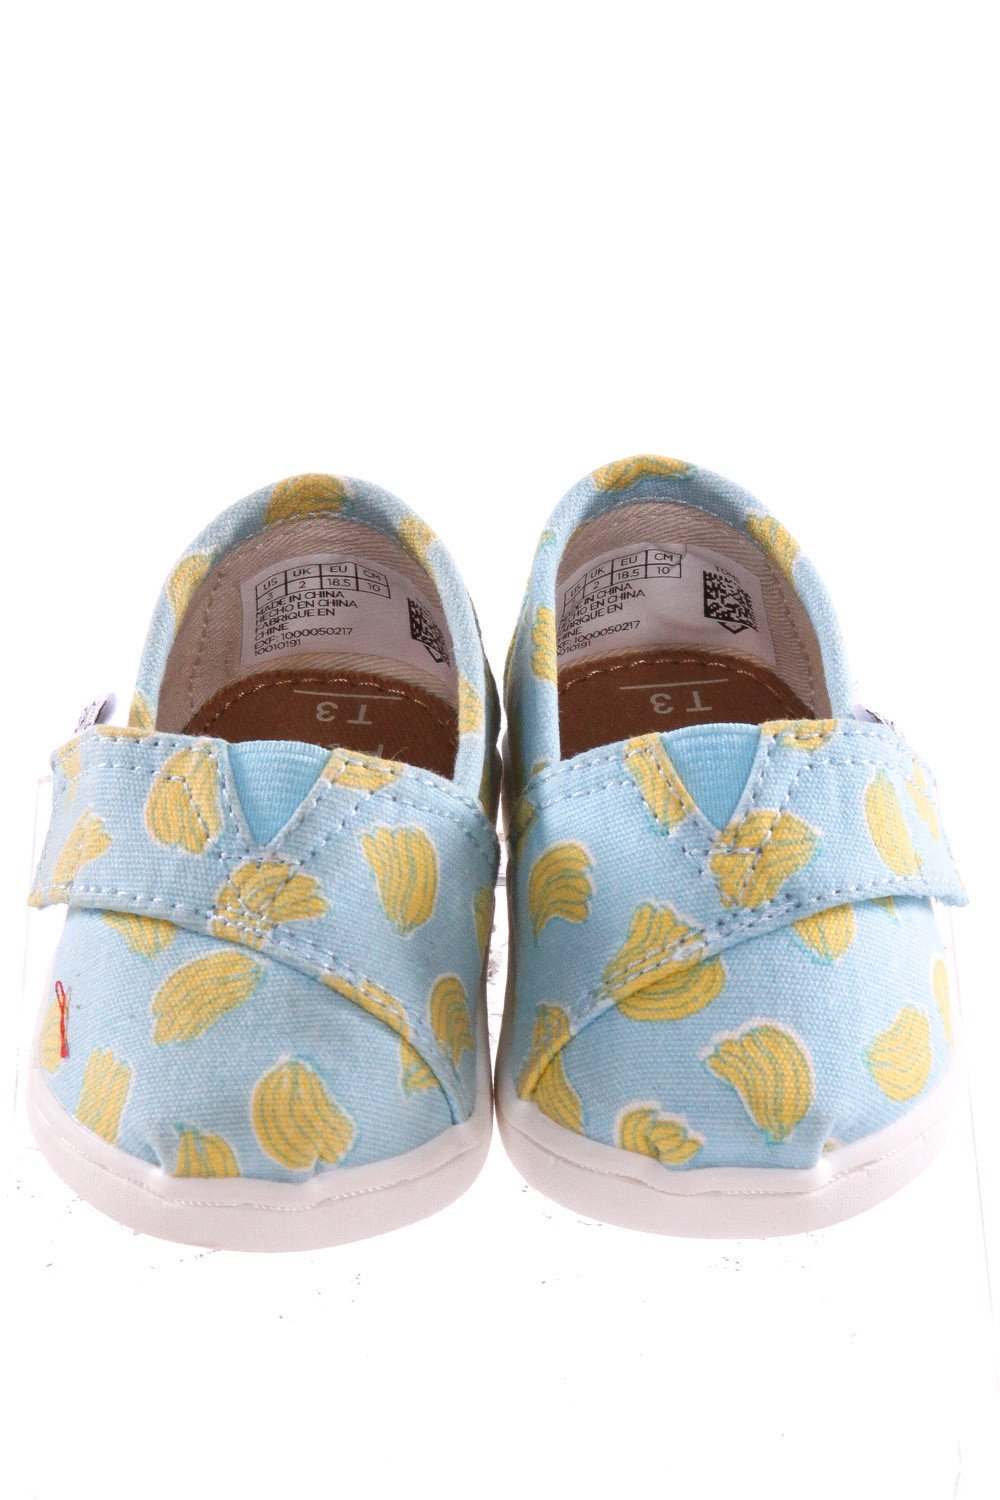 BLUE TOMS WITH BANANAS *SIZE 3, VGU - SLIGHT DISCOLORED AREA